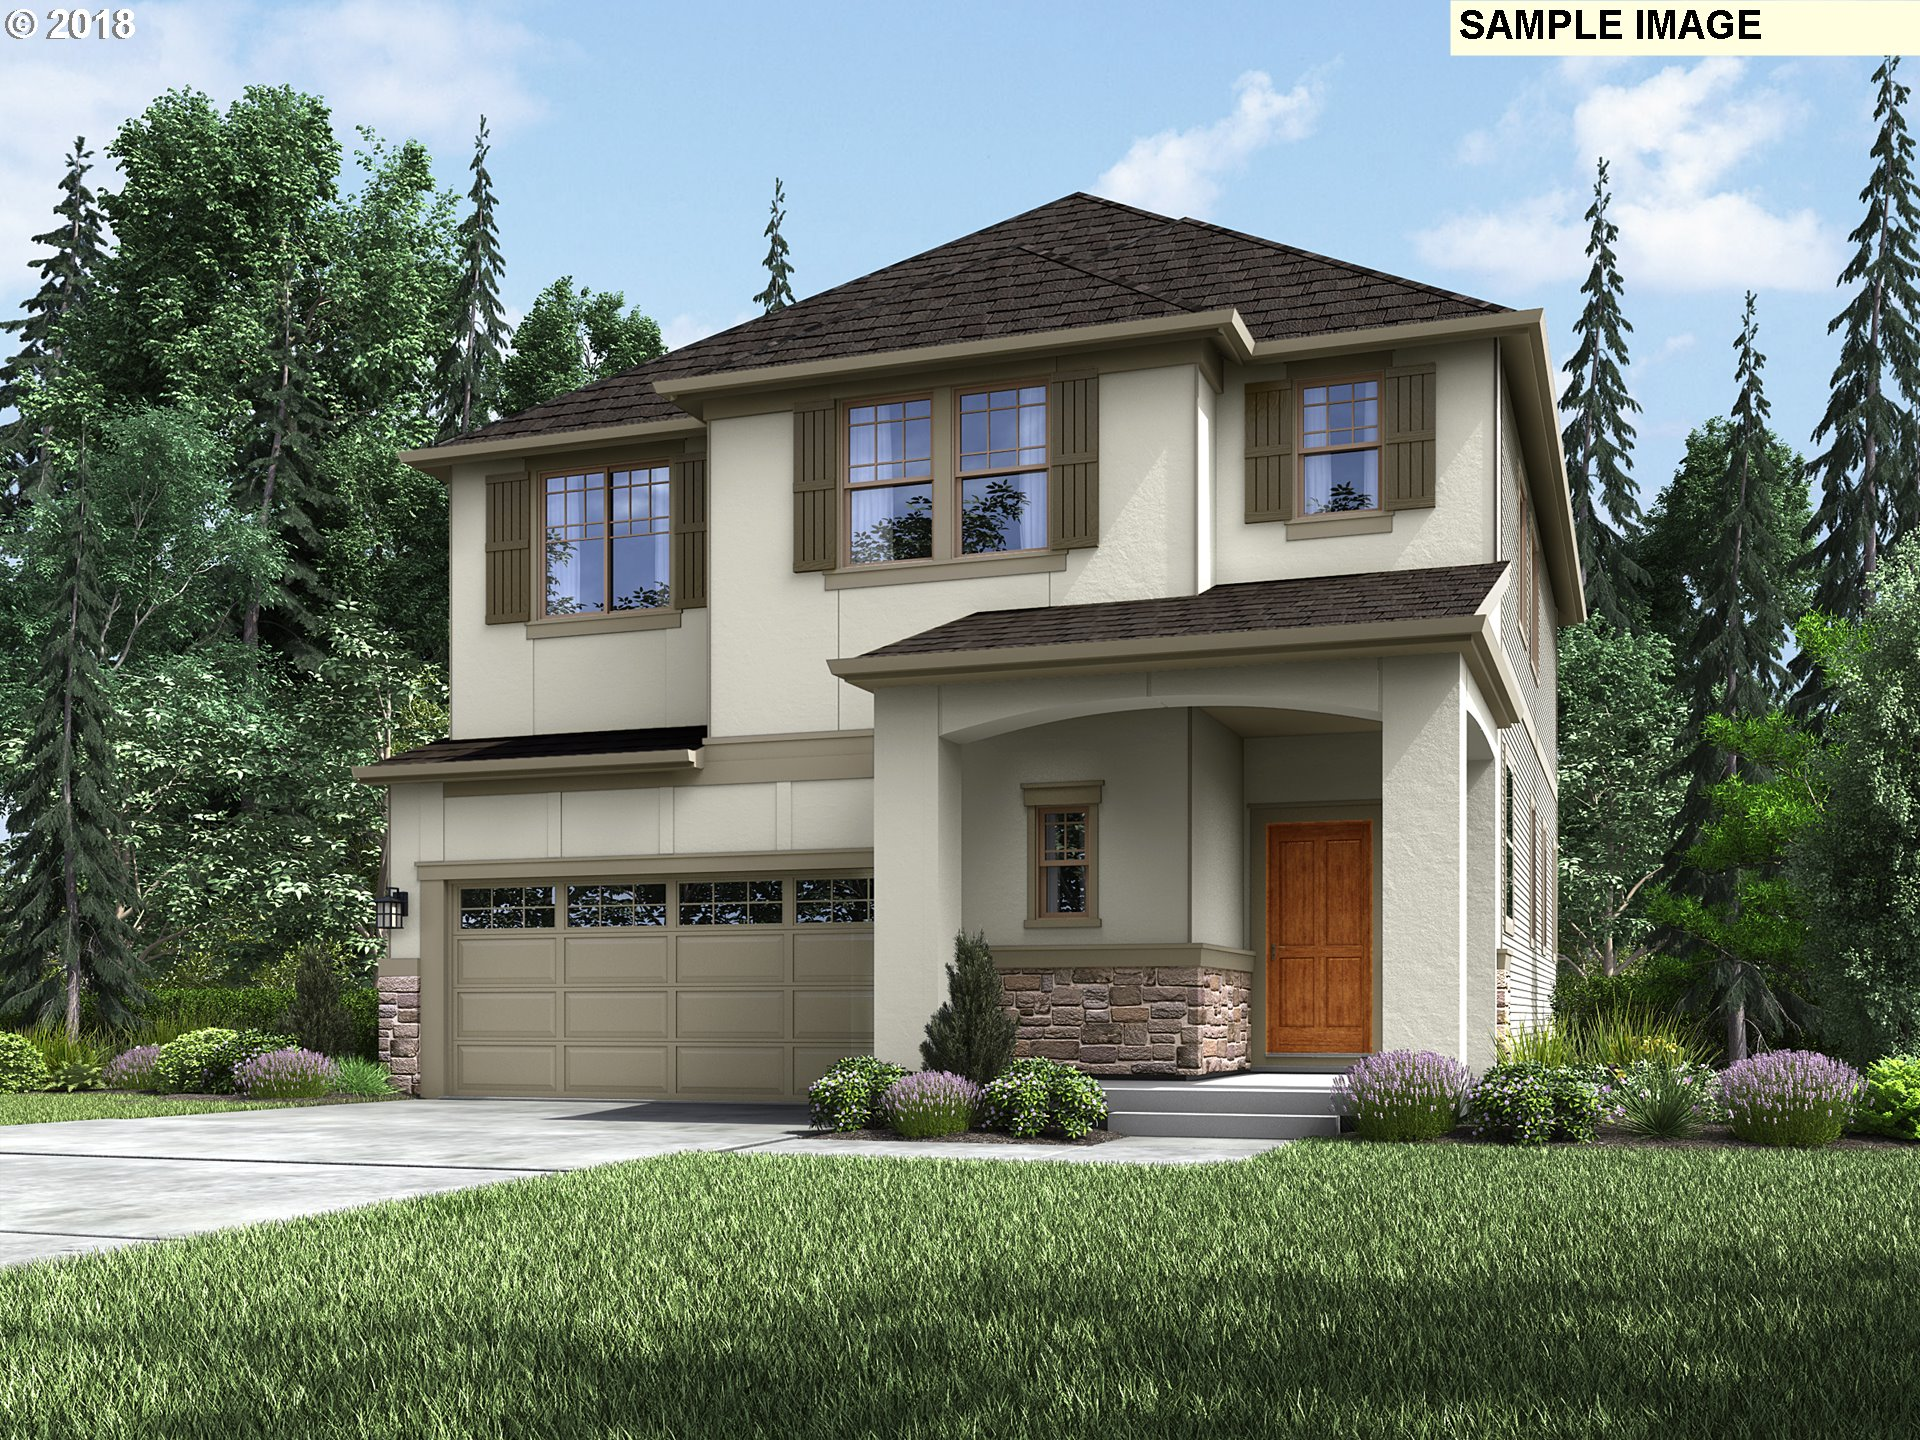 "MUST SEE! AMAZING French-style home at the NEW Eastridge community in the River Terrace planned community! ""Light and Bright"" open floor plan features DRAMATIC 10' ceiling on main level, gourmet kitchen w/ granite island, hardwood floors + stainless appliances! Luxurious master suite boasts 2 walk-in closets, huge soaker tub, walk-in shower and dual vanity! Minutes to shopping + dining at Progress Ridge! 3 Year Builder Warranty."